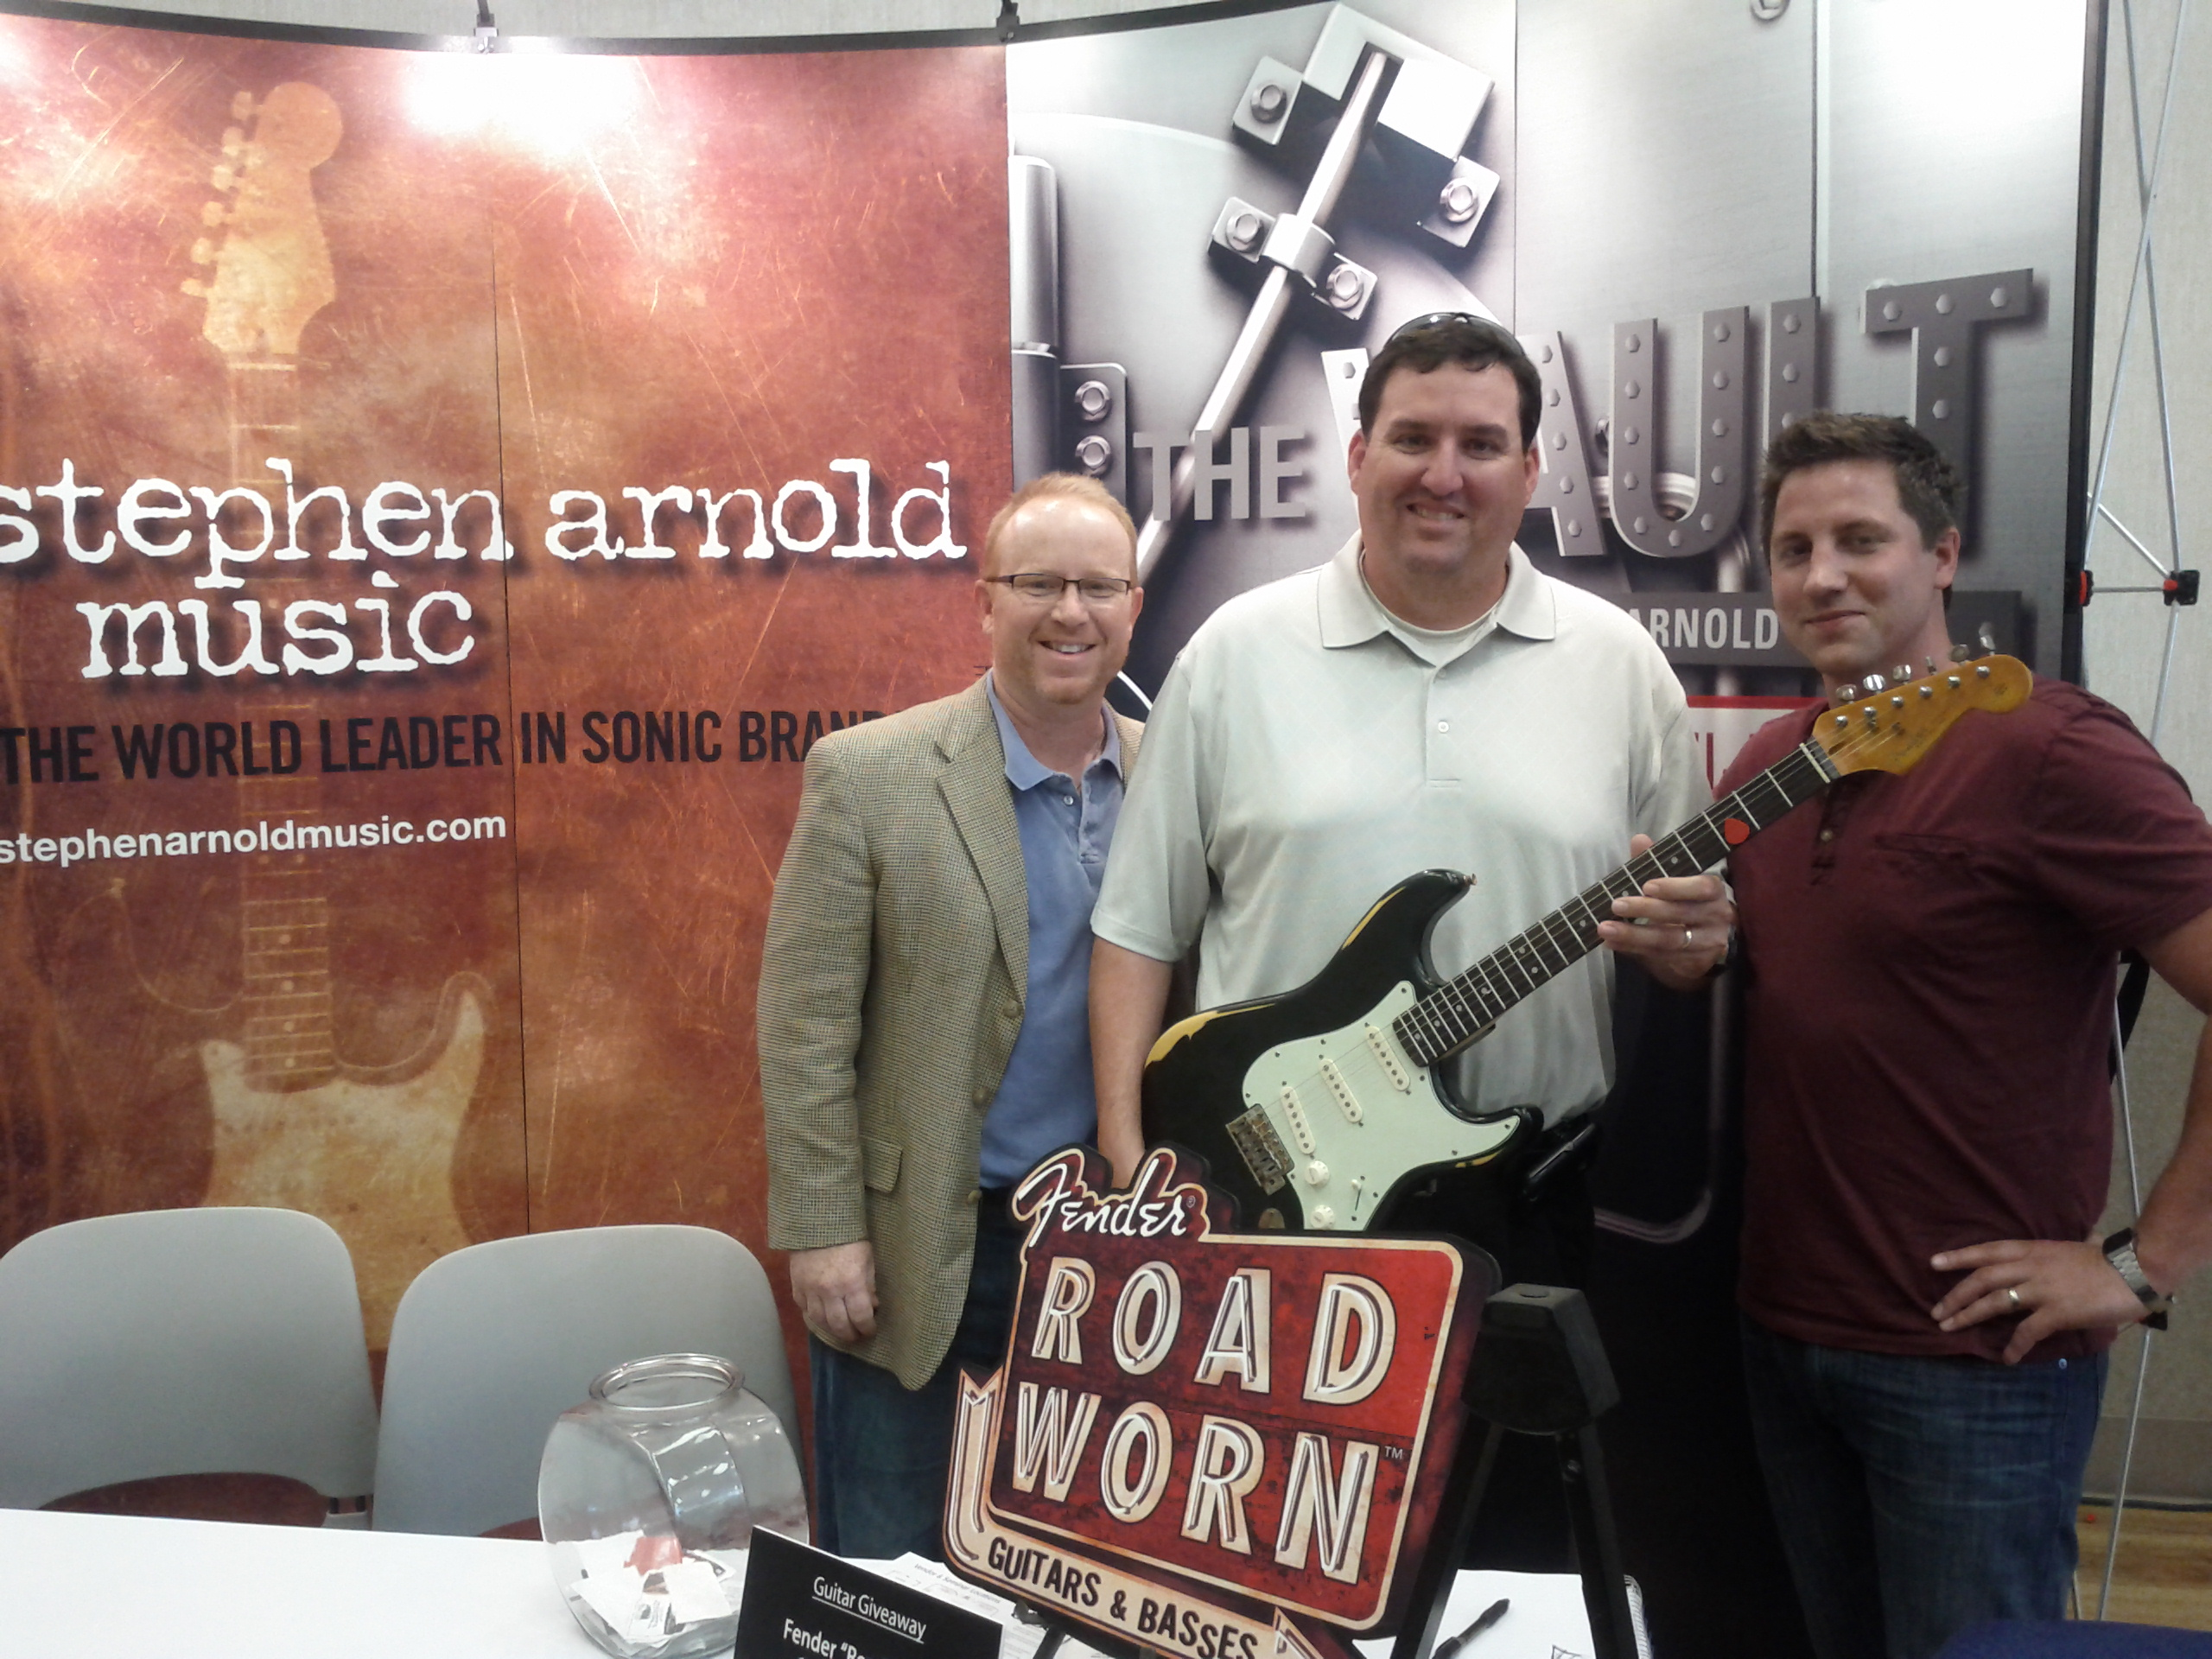 Road Worn Guitar Winner - Stephen Arnold Music